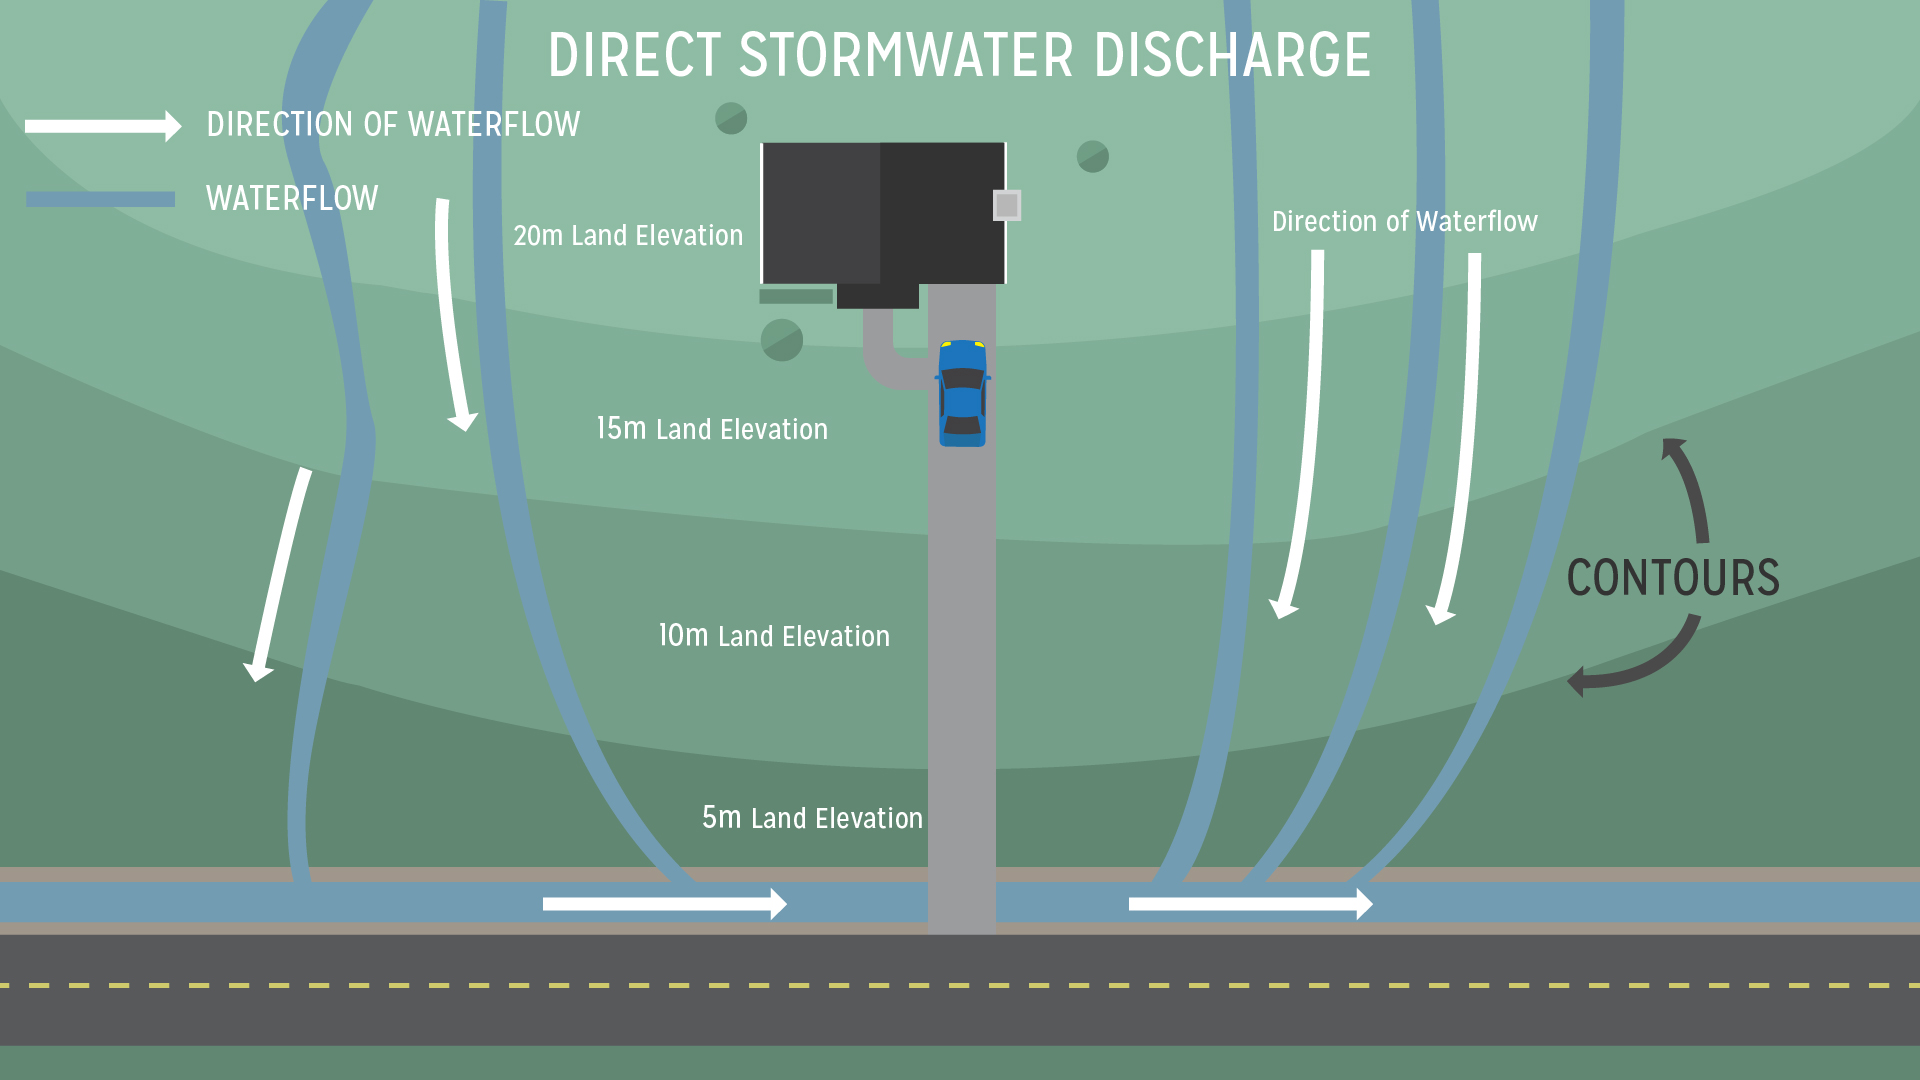 Direct stormwater discharge from property